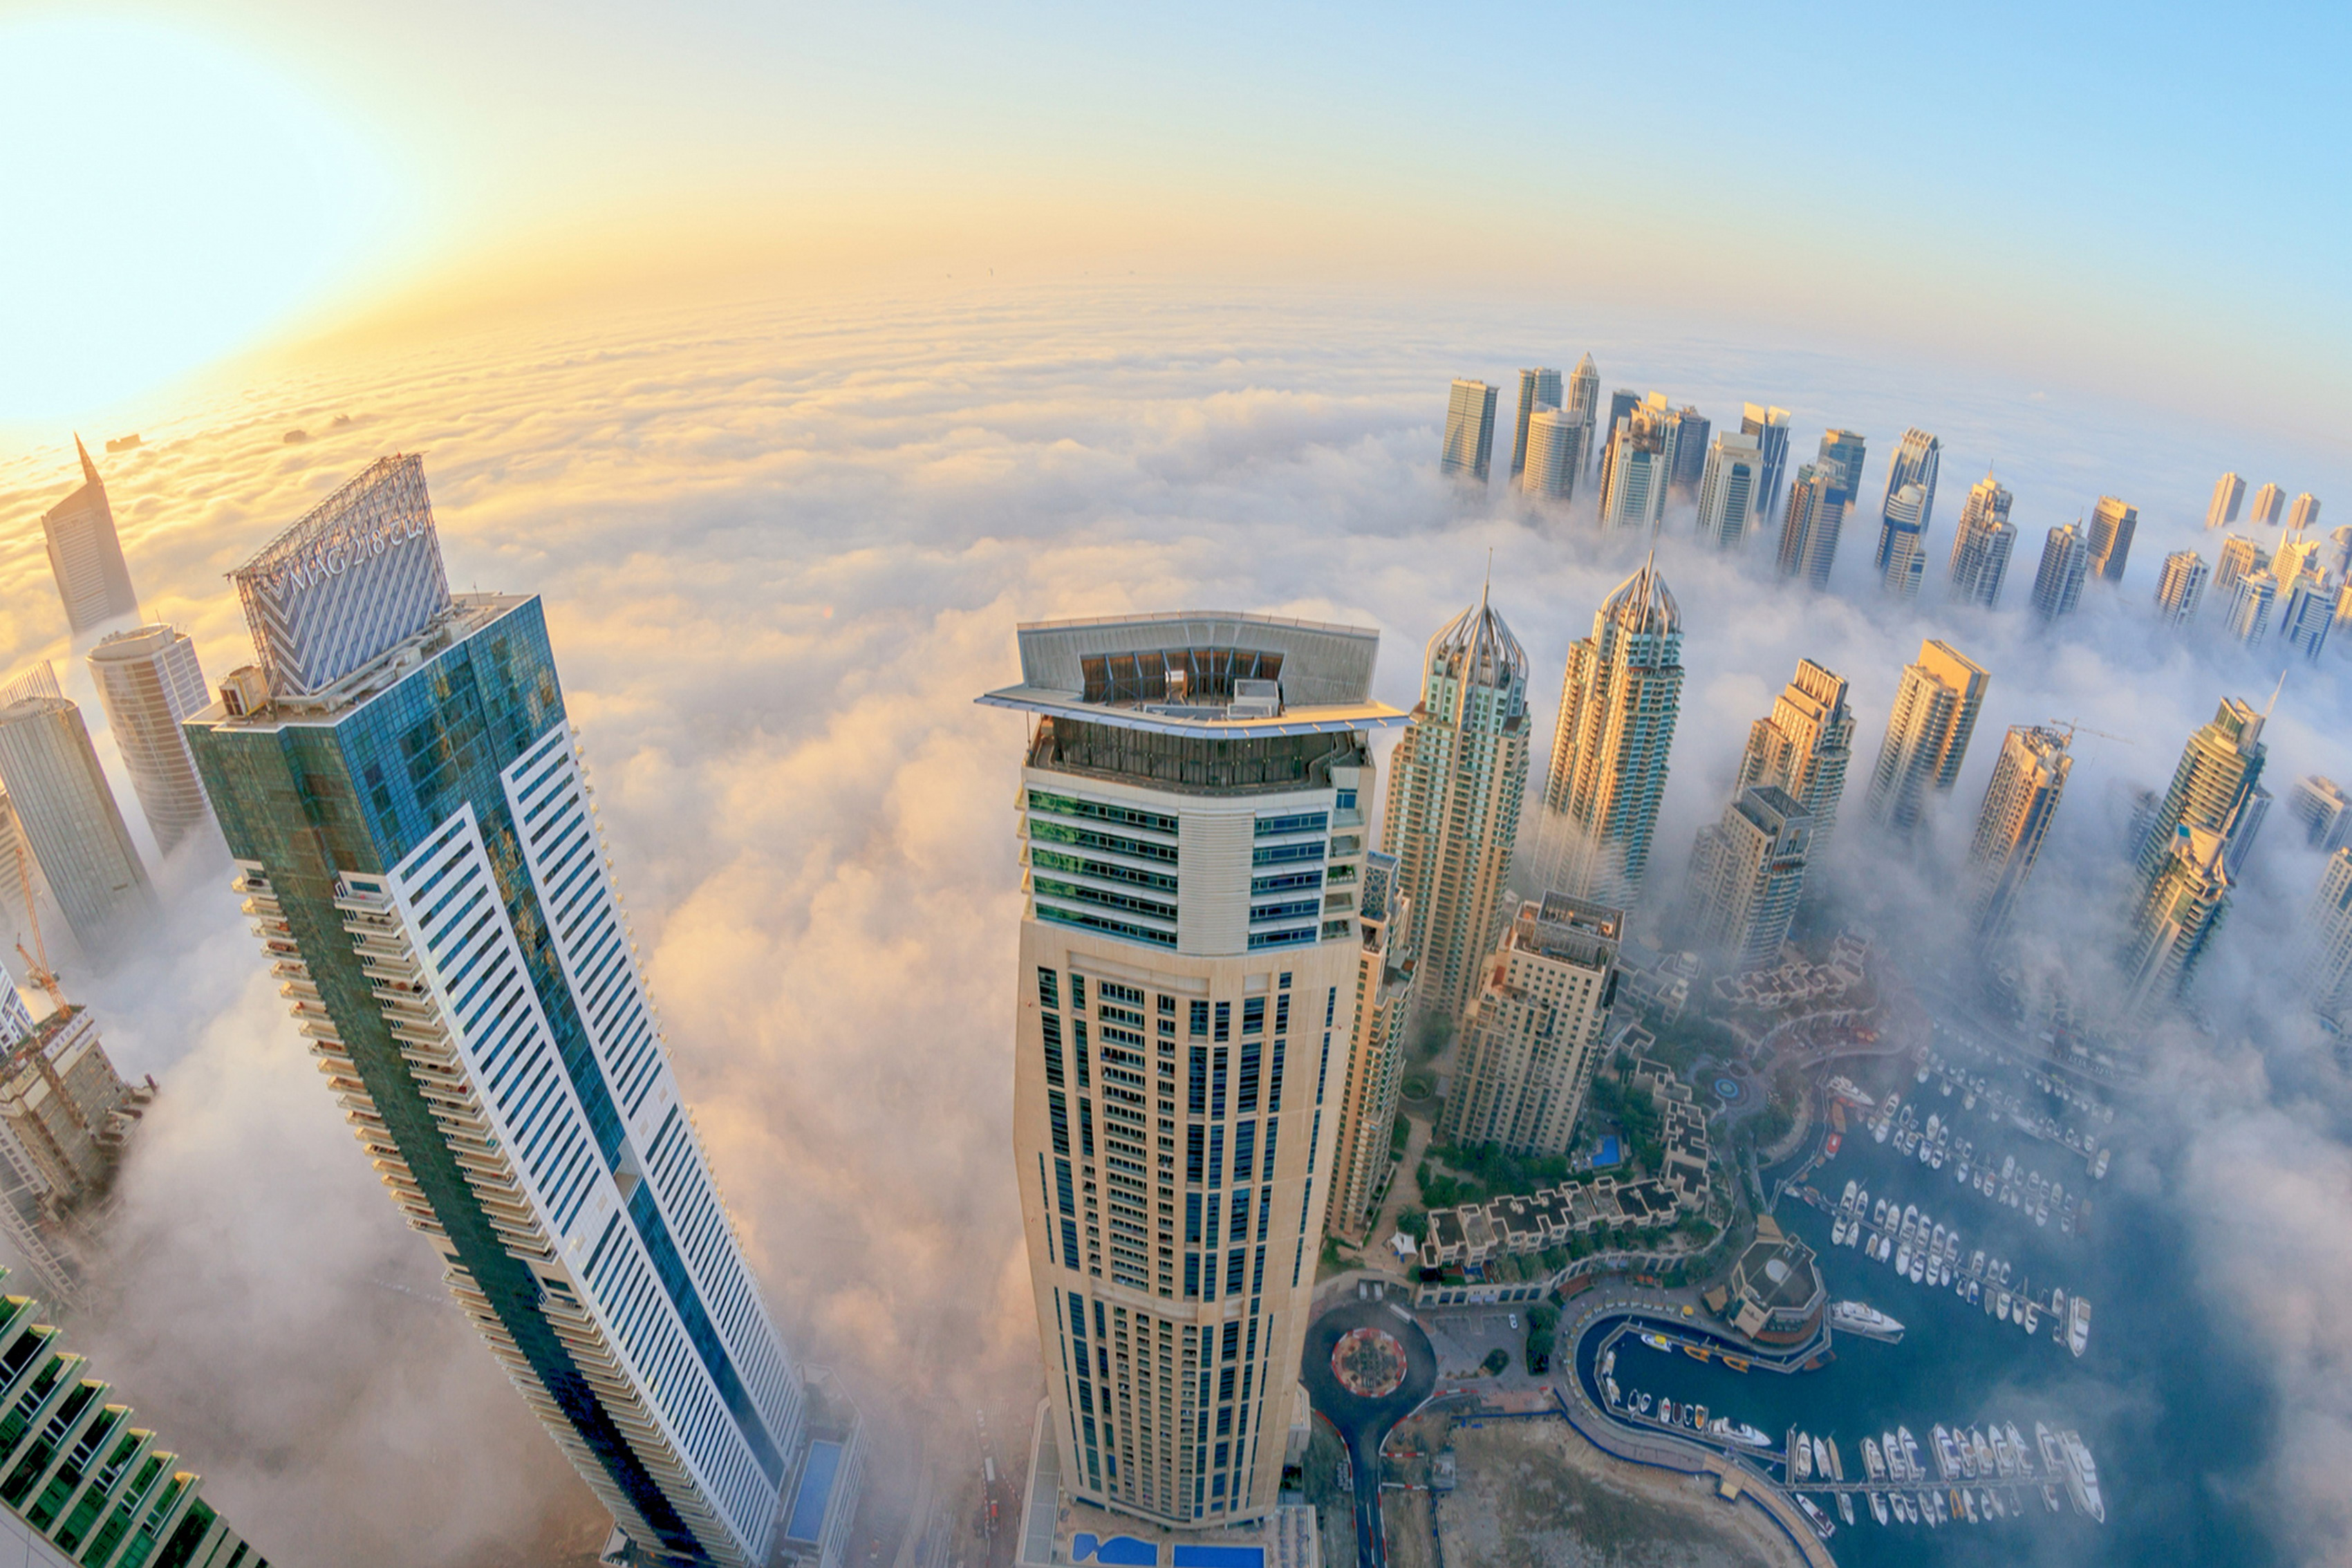 Home decoration Dubai Buildings Skyscrapers Clouds Fog Mist Sunlight Fisheye Silk Fabric Poster Print 106FJ